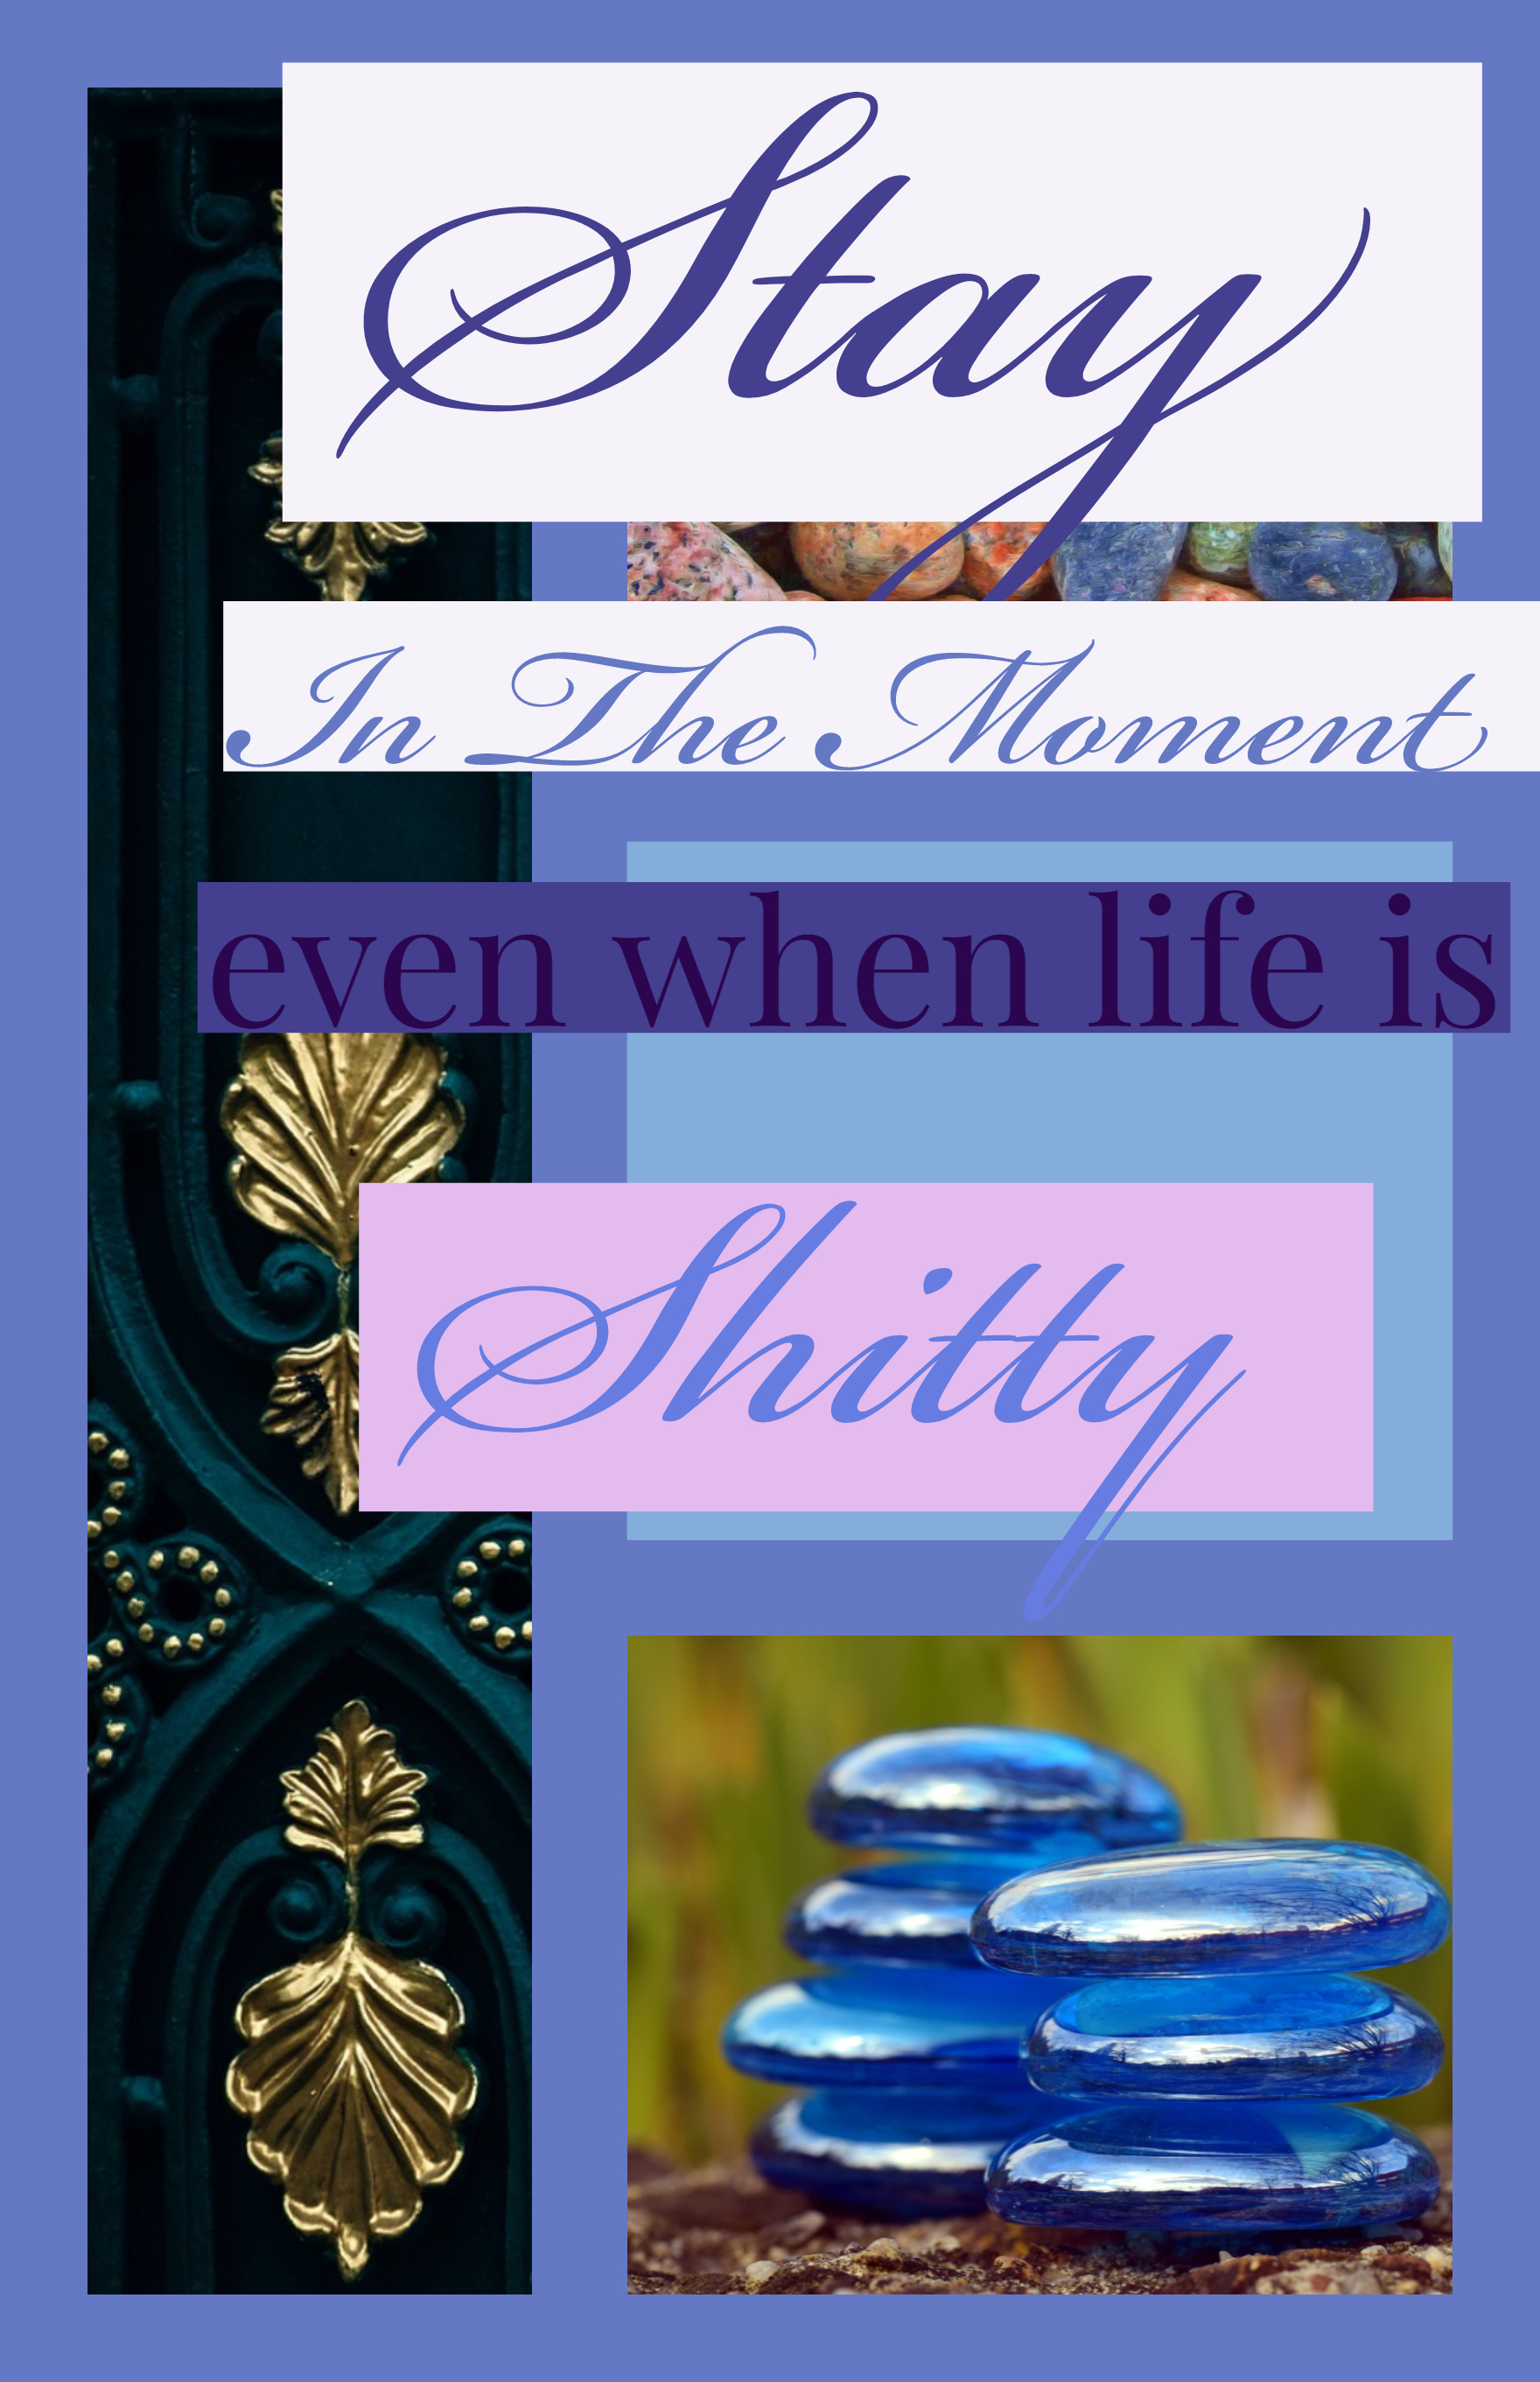 Stay in the moment, even when life is shitty.